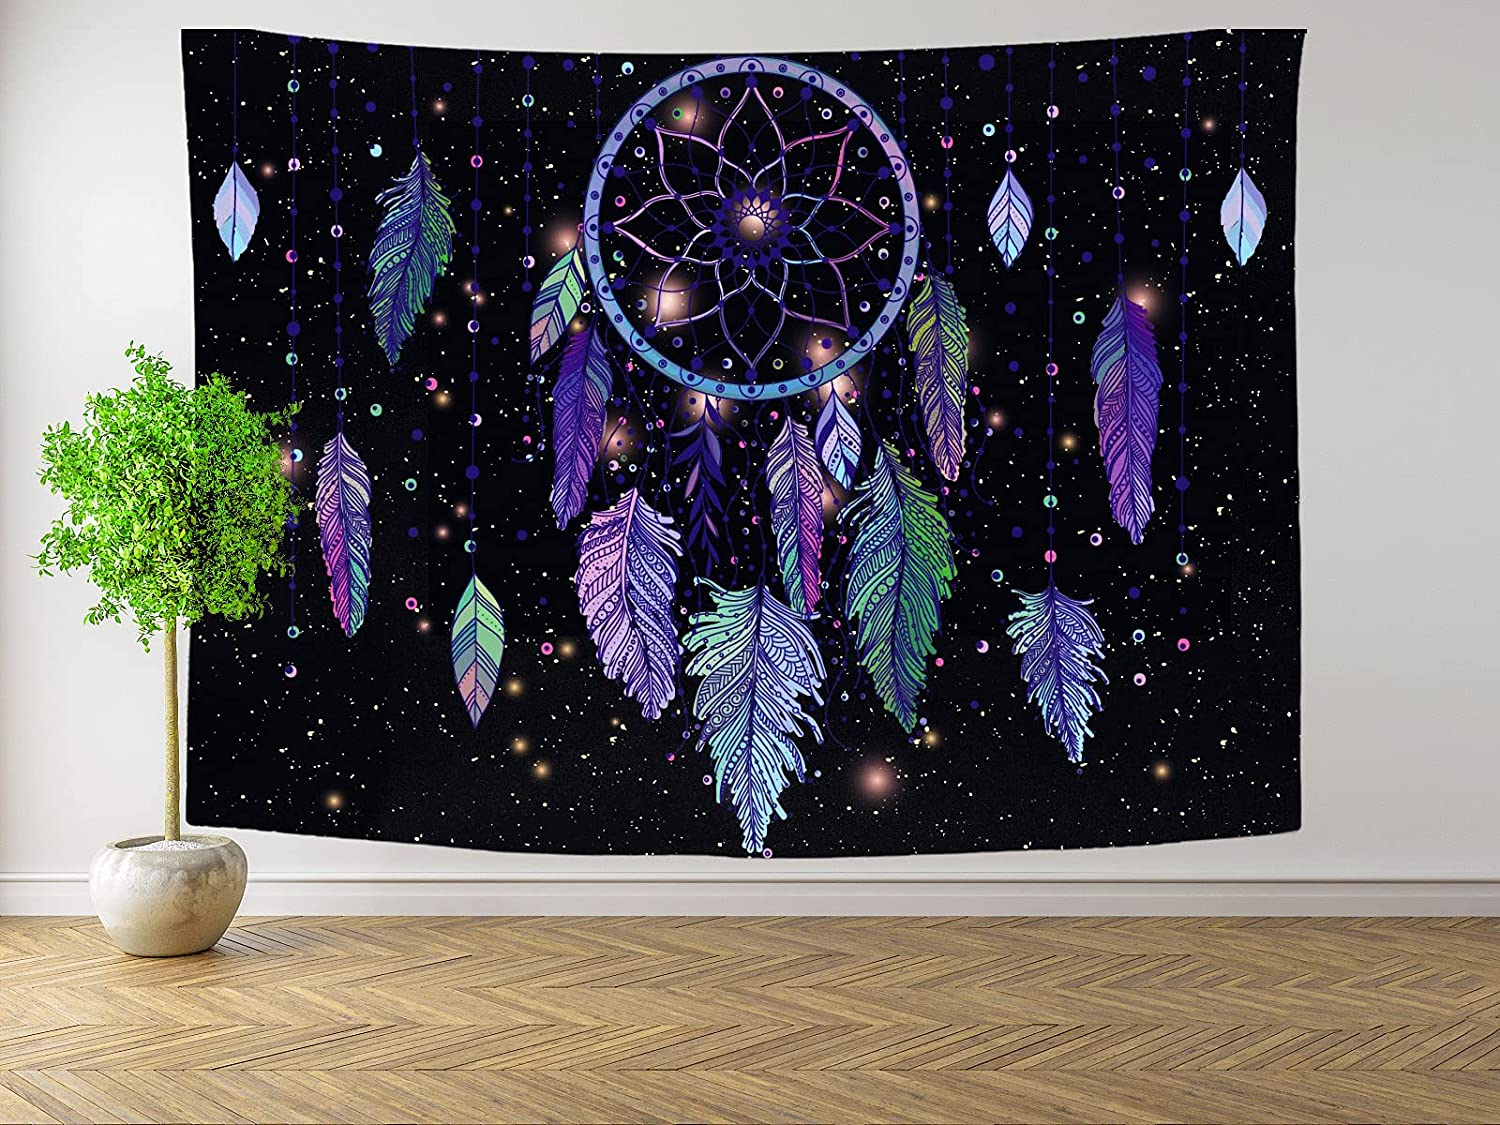 Floral Tapestry Wall Decor Bedroom Ta Max Max 82% OFF 44% OFF Aesthetic Feather